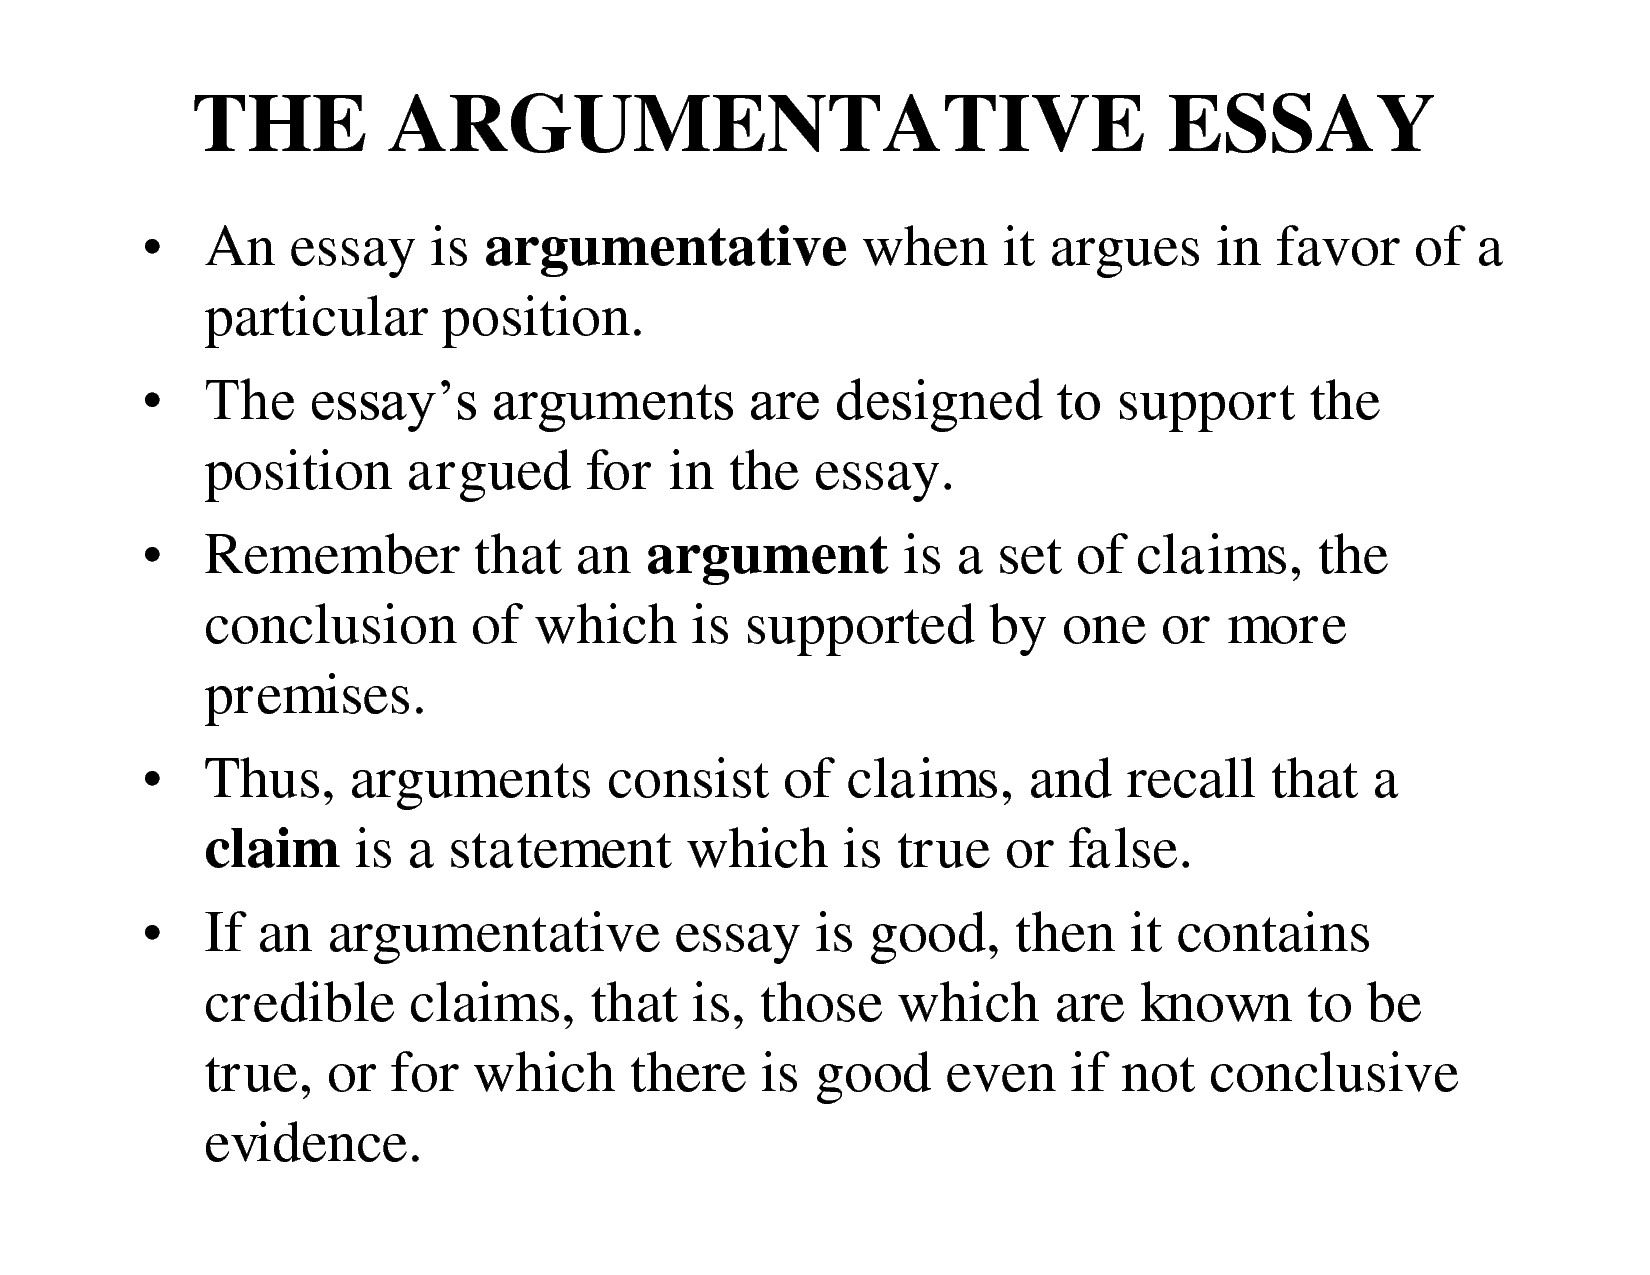 001 Essay Example Bombastic Words For Writing Coursework Service Fdpaperyvsi To Include In An Argumentative How Write Conclusions Another Word Conclusion Thr Impressive Use Essays Avoid Wonderful Full